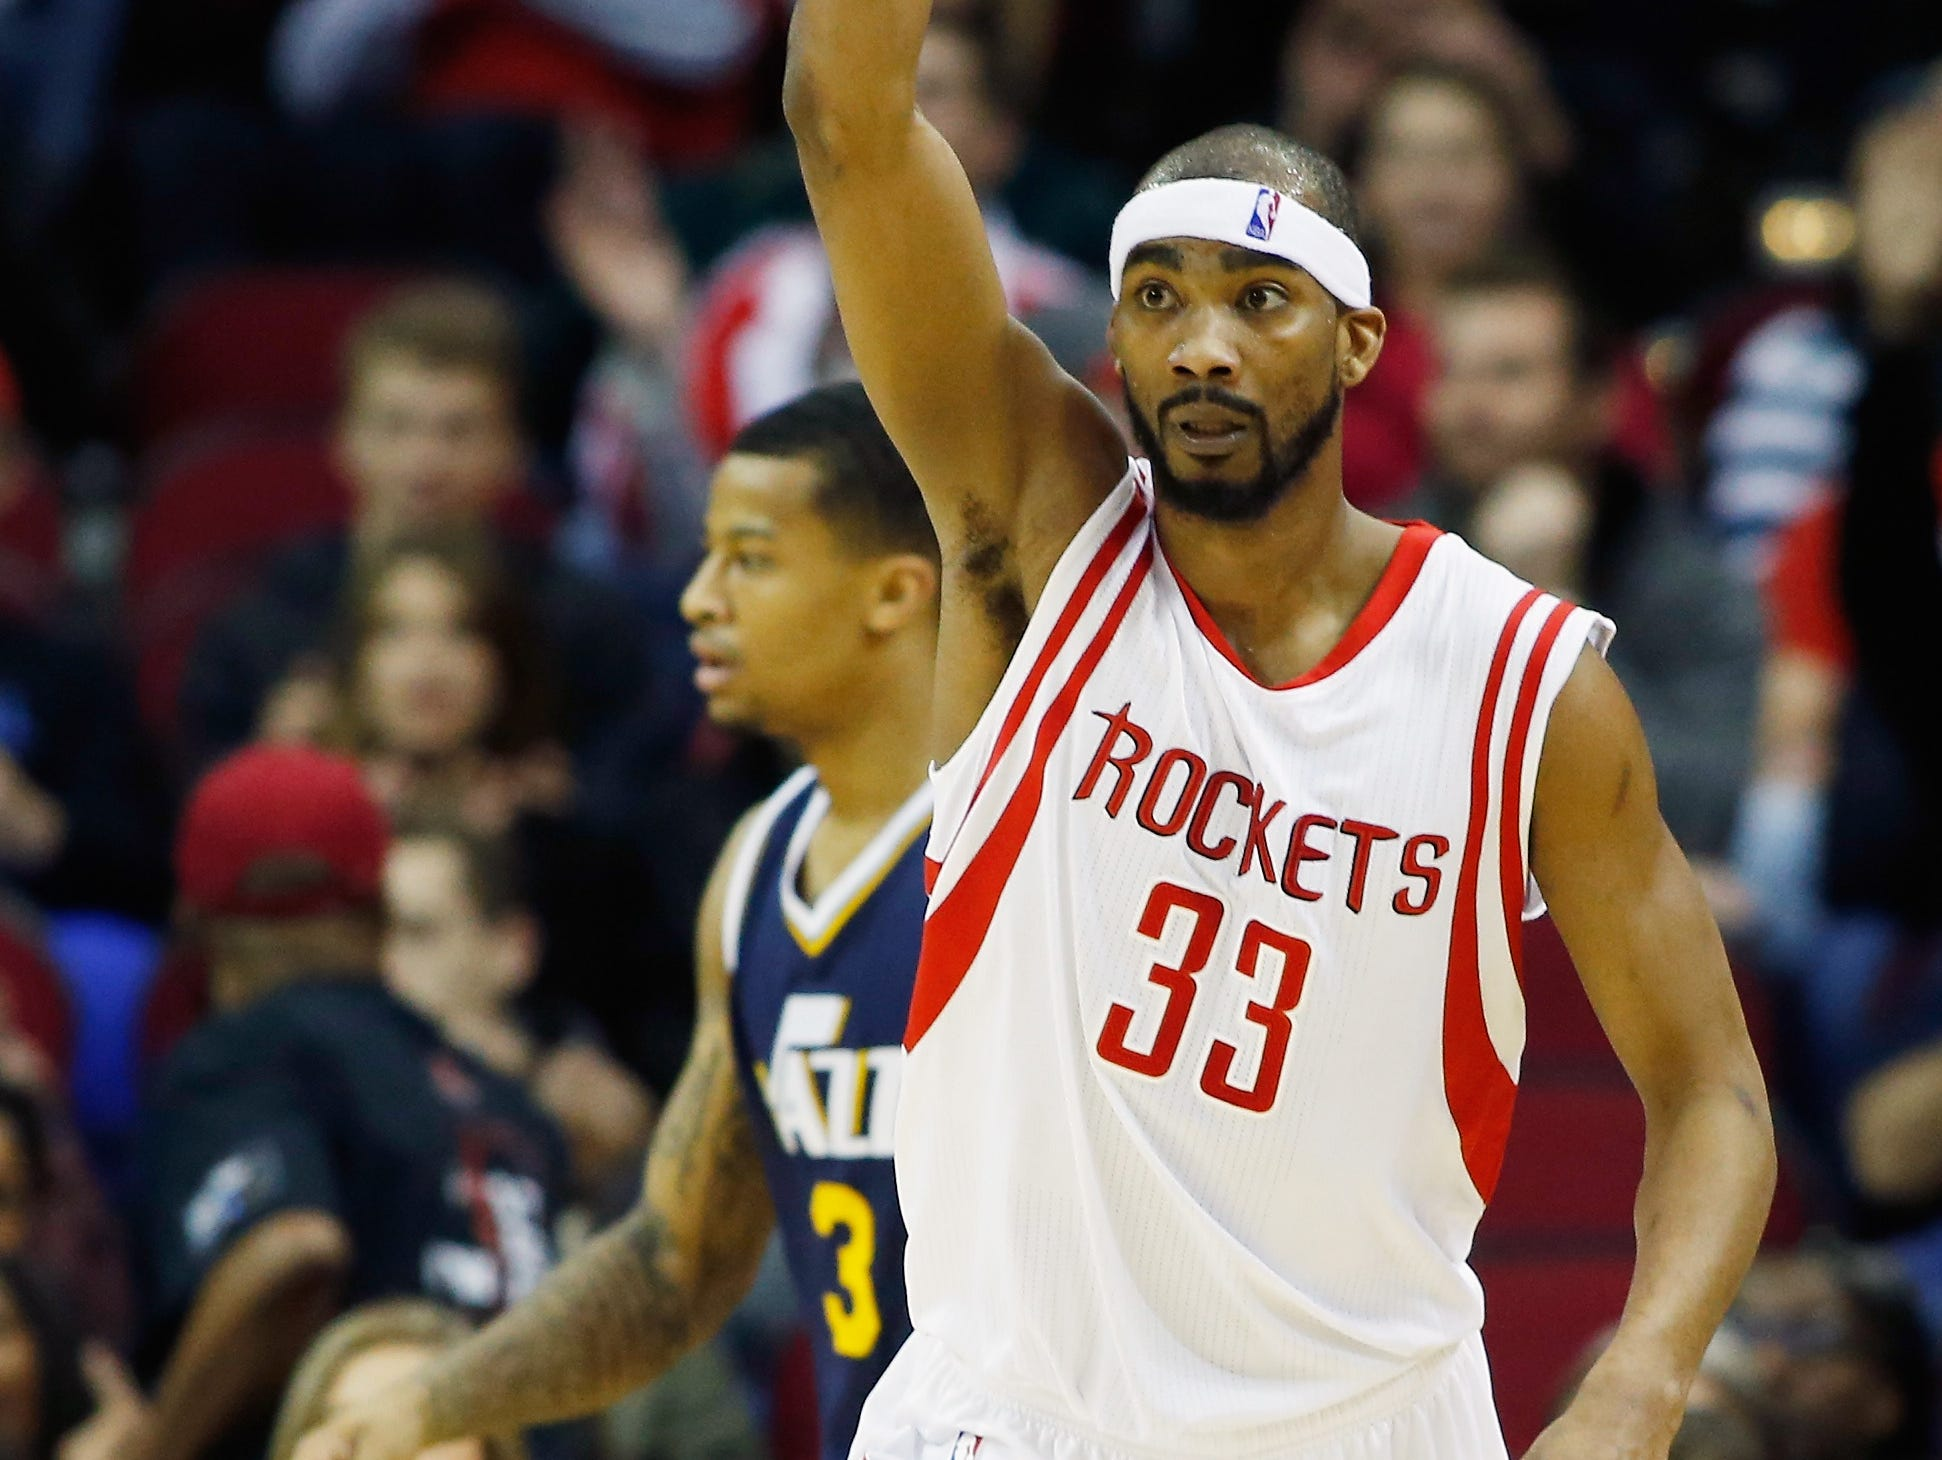 Former Florida Gators star Corey Brewer has journeyed around the NBA, but he may have found a home in Houston.